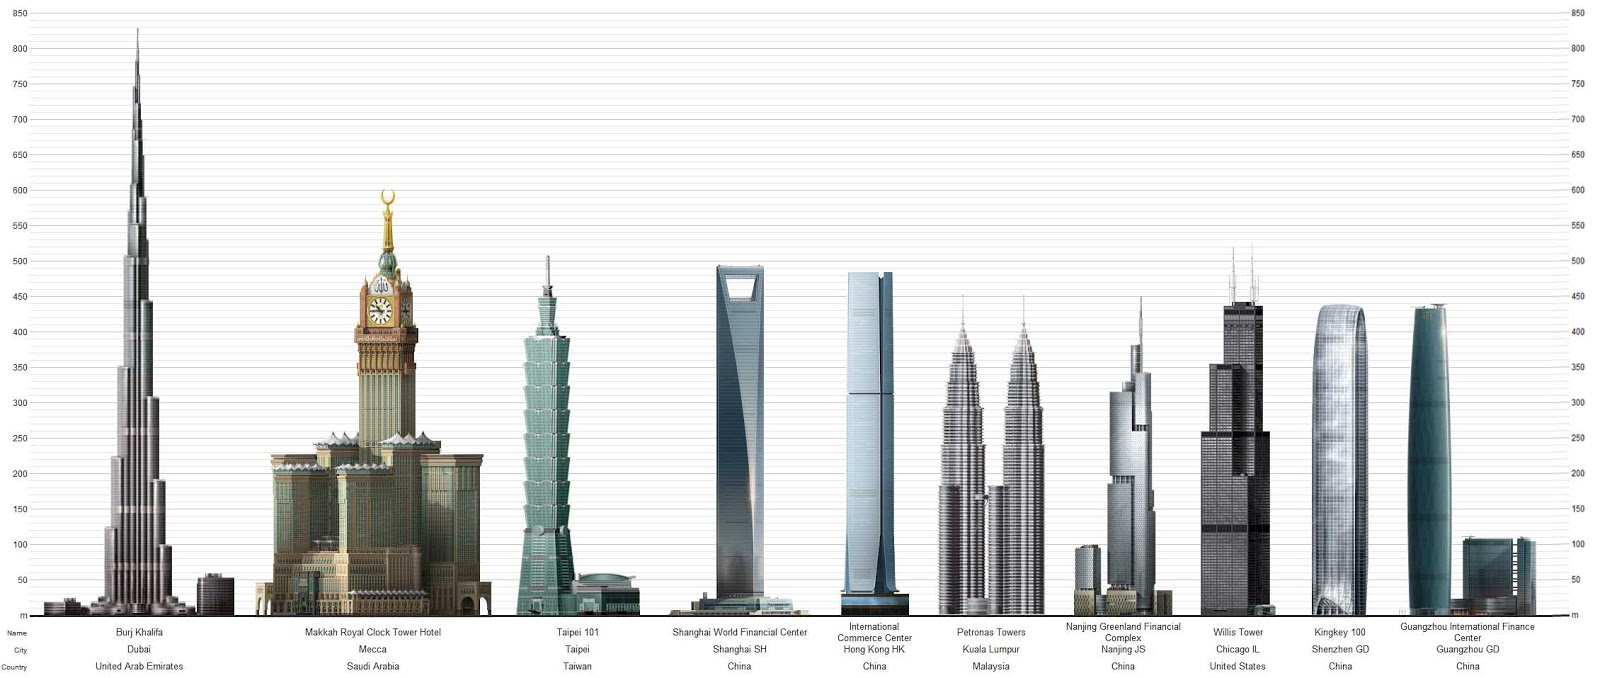 Best 3d Live Wallpaper Android 2015 Blog With Best Of All Things Top 10 Tallest Buildings In